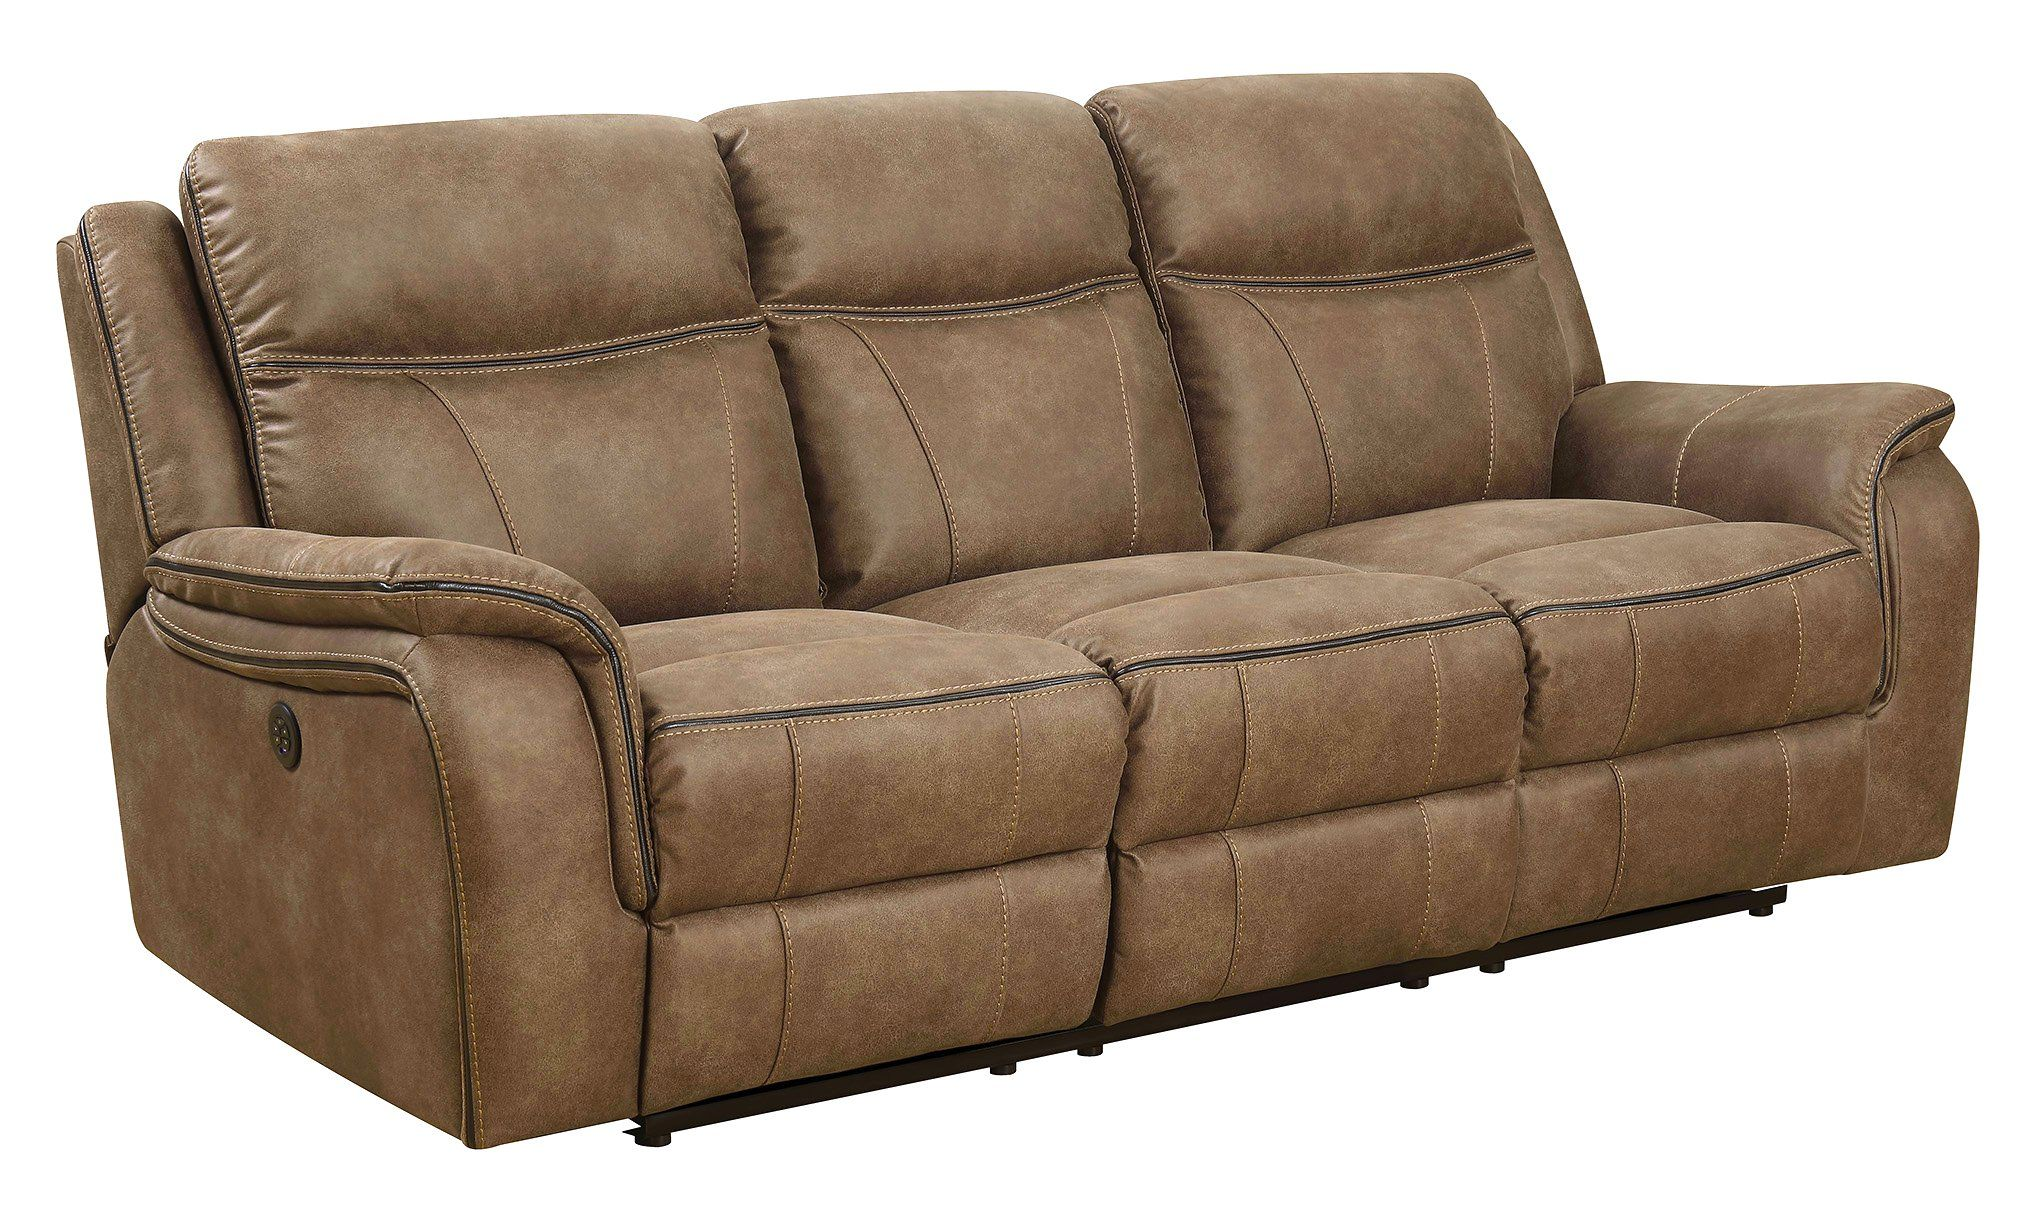 hr new flynn furniture classic sofa reclining recliner dual products